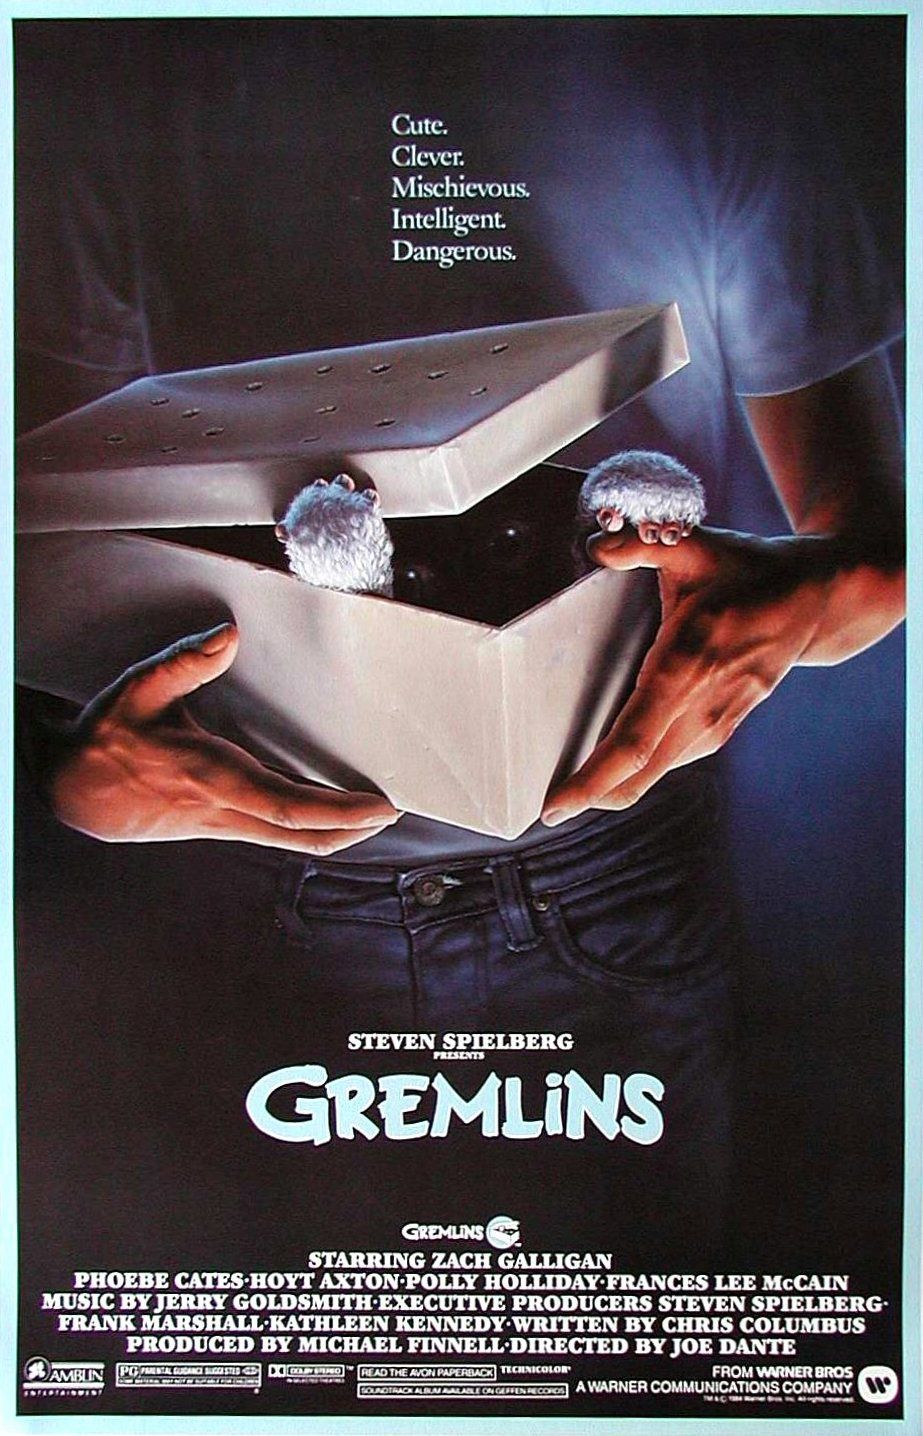 Pin by Tofer on Eighties Posters Gremlins, Scary movies